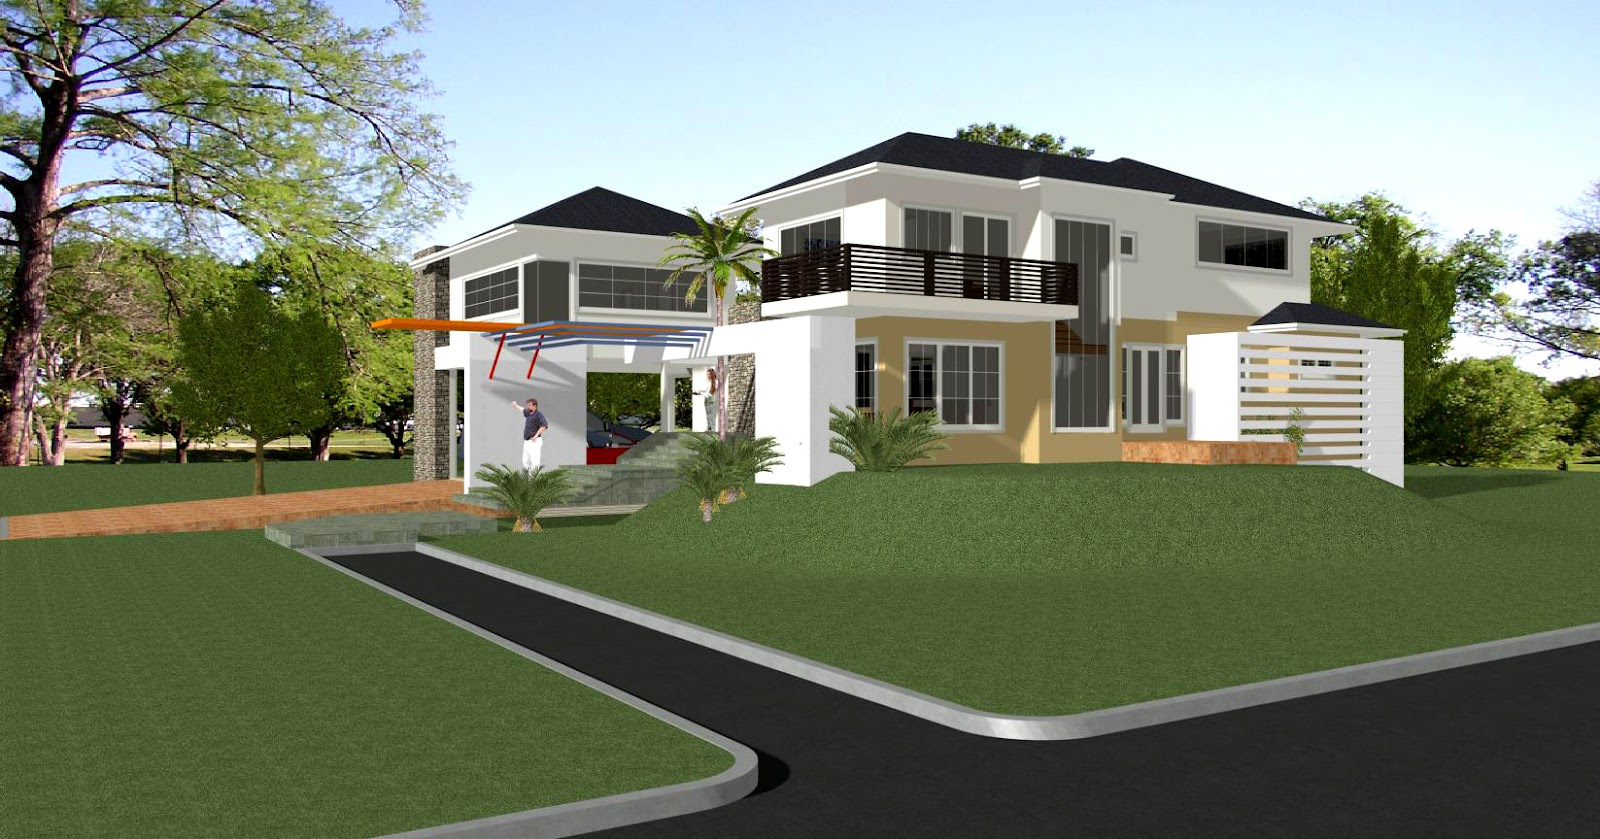 Dream home designs erecre group realty design and for House models and plans